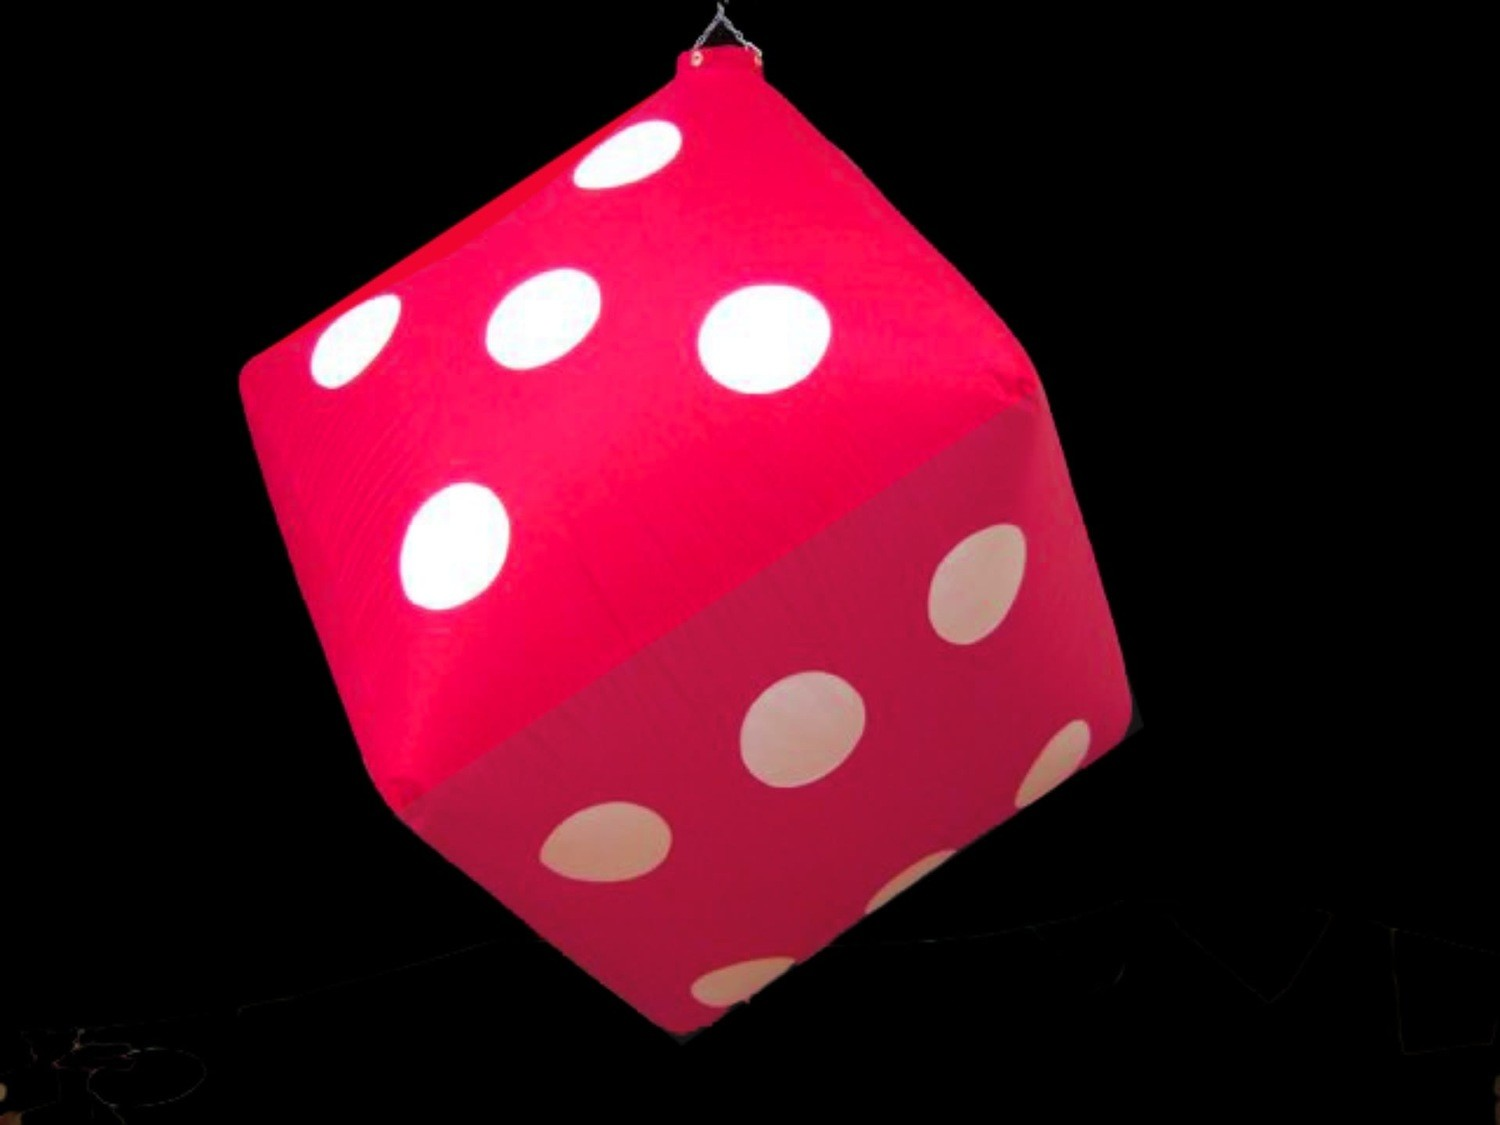 Hanging Inflatable Dice 5ft/152cm x 5ft/152cm